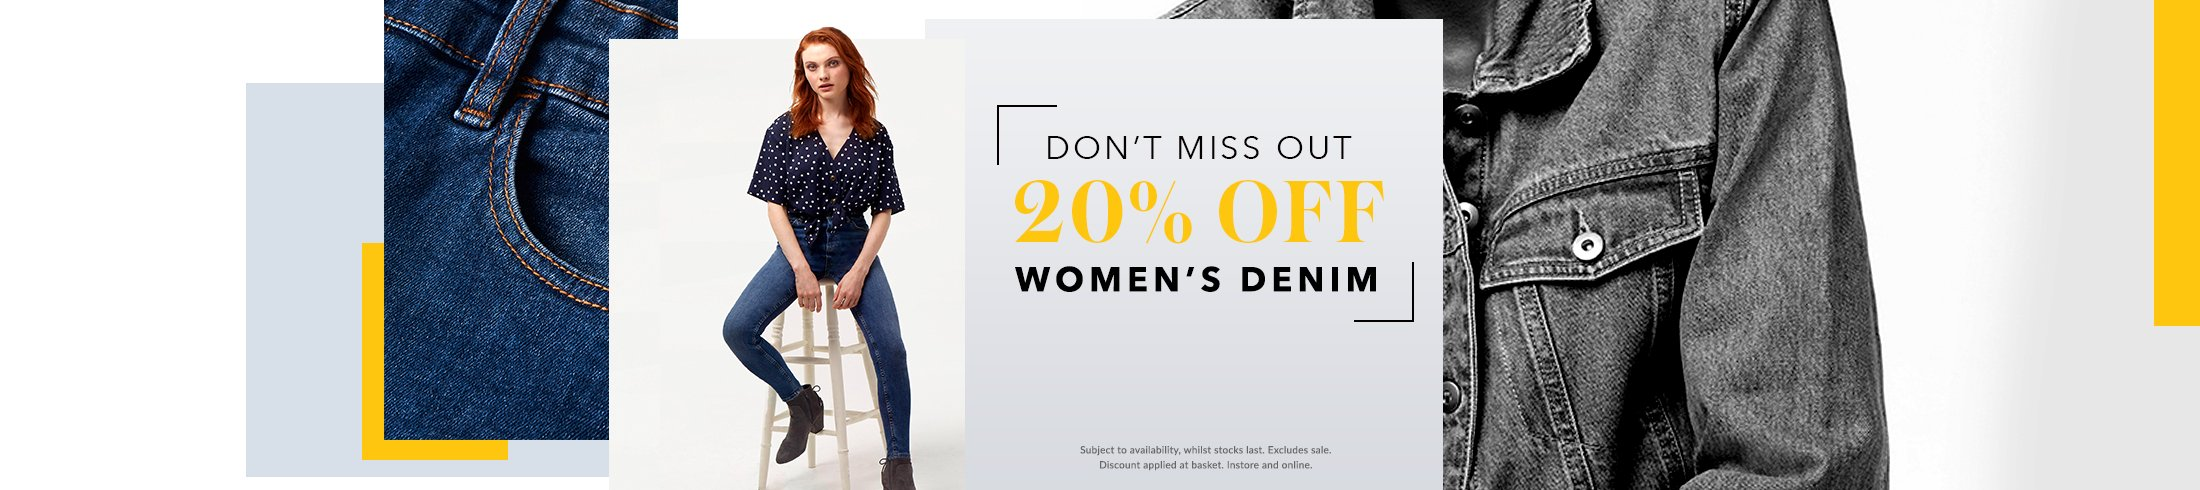 Enjoy a 20% discount on your fav jeans